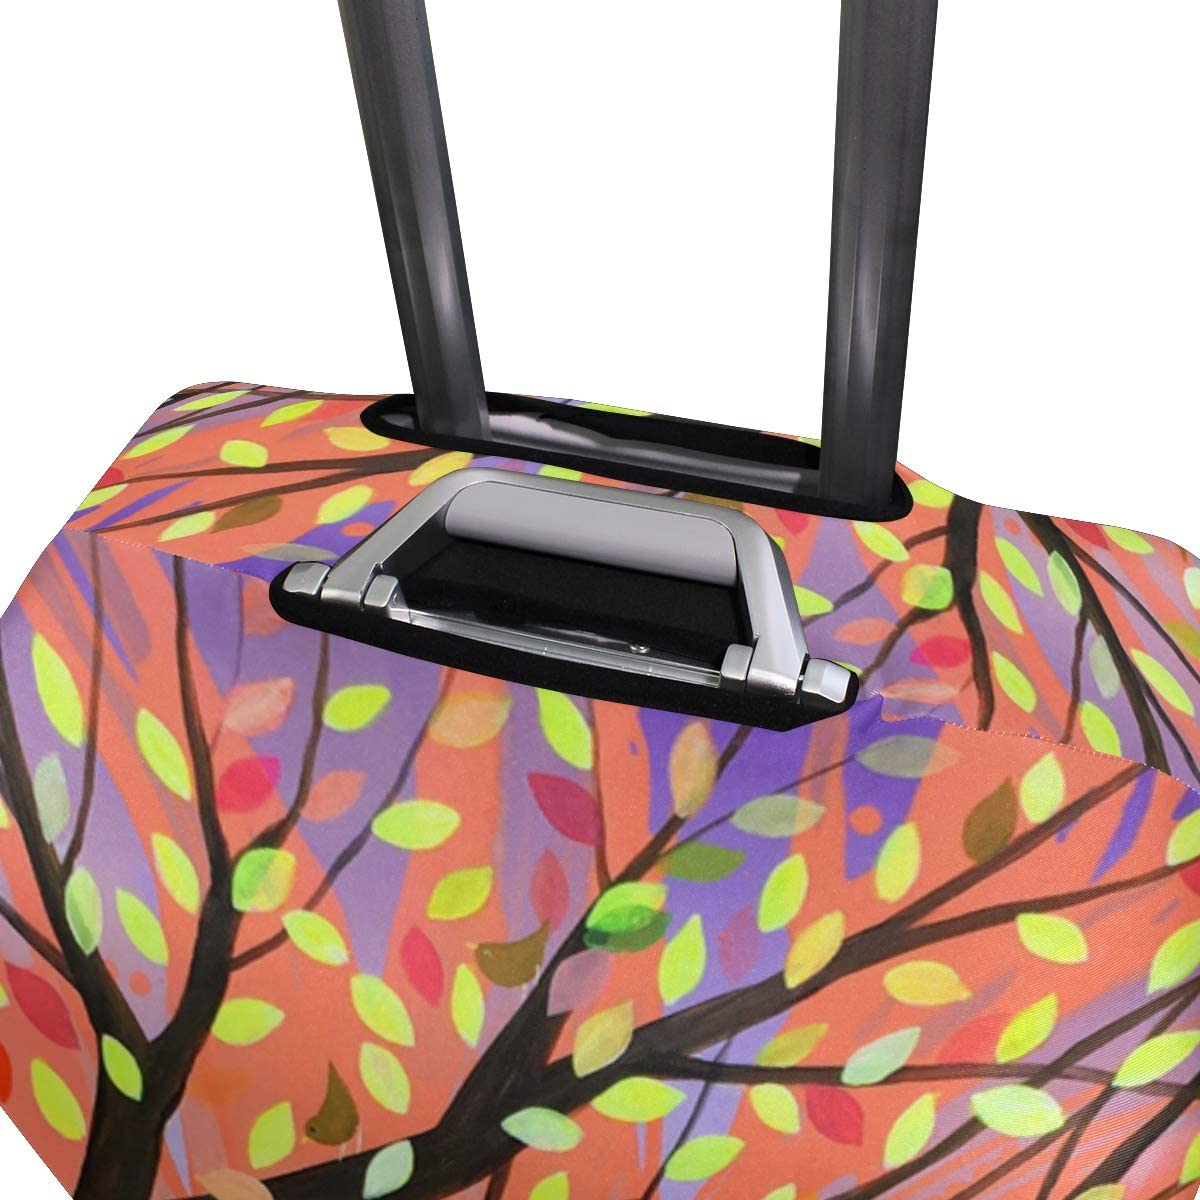 FOLPPLY Colorful Tree Of Life Luggage Cover Baggage Suitcase Travel Protector Fit for 18-32 Inch